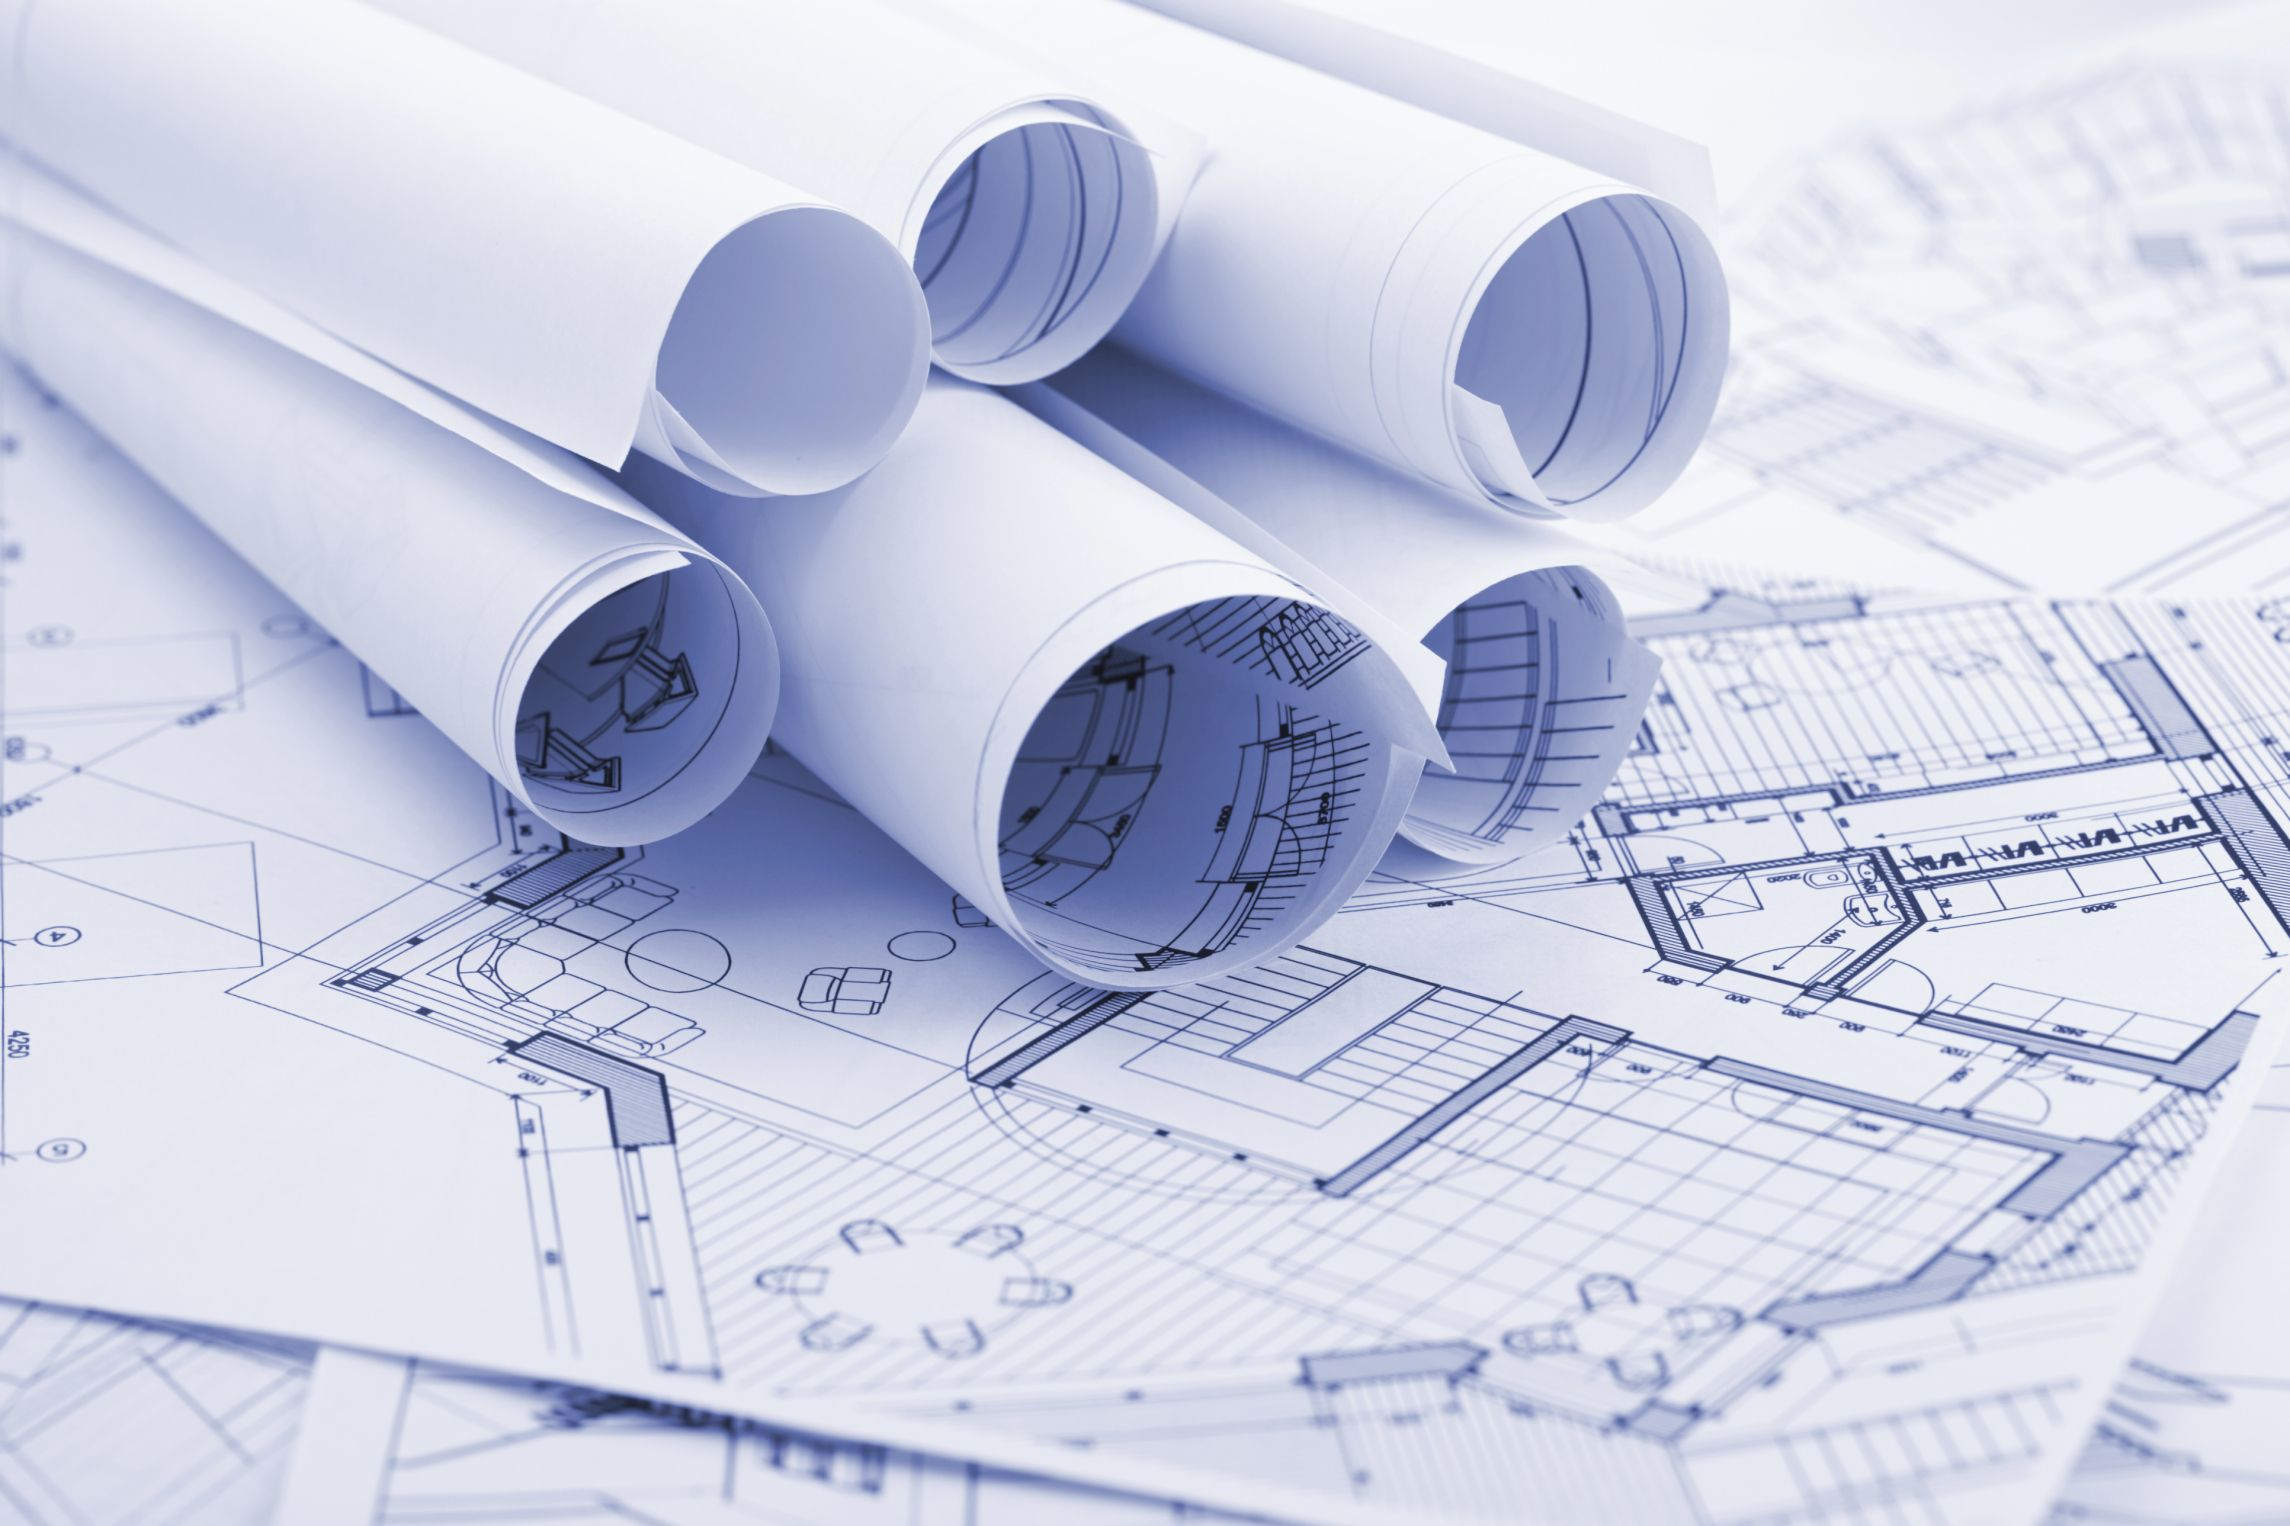 A Blueprint Is A Master Plan Or Drawing Of How Your Home Was Constructed Architecture Blueprints Blueprints How To Plan